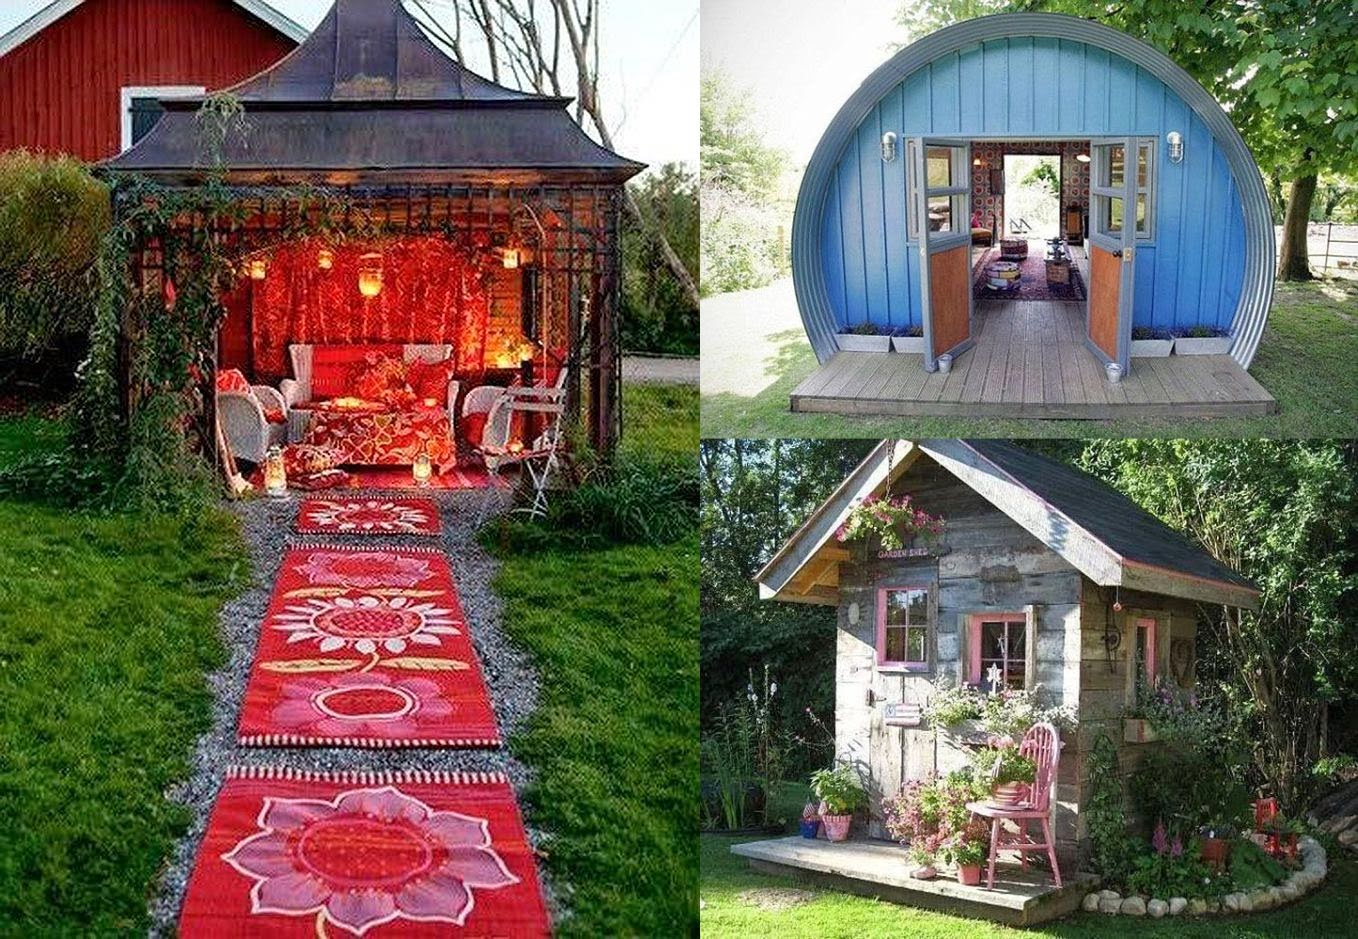 WE LOVE THE WAY BLACK WOMEN SURVIVE AND THRIVE: DEAR MAN CAVE MEET SHE SHED